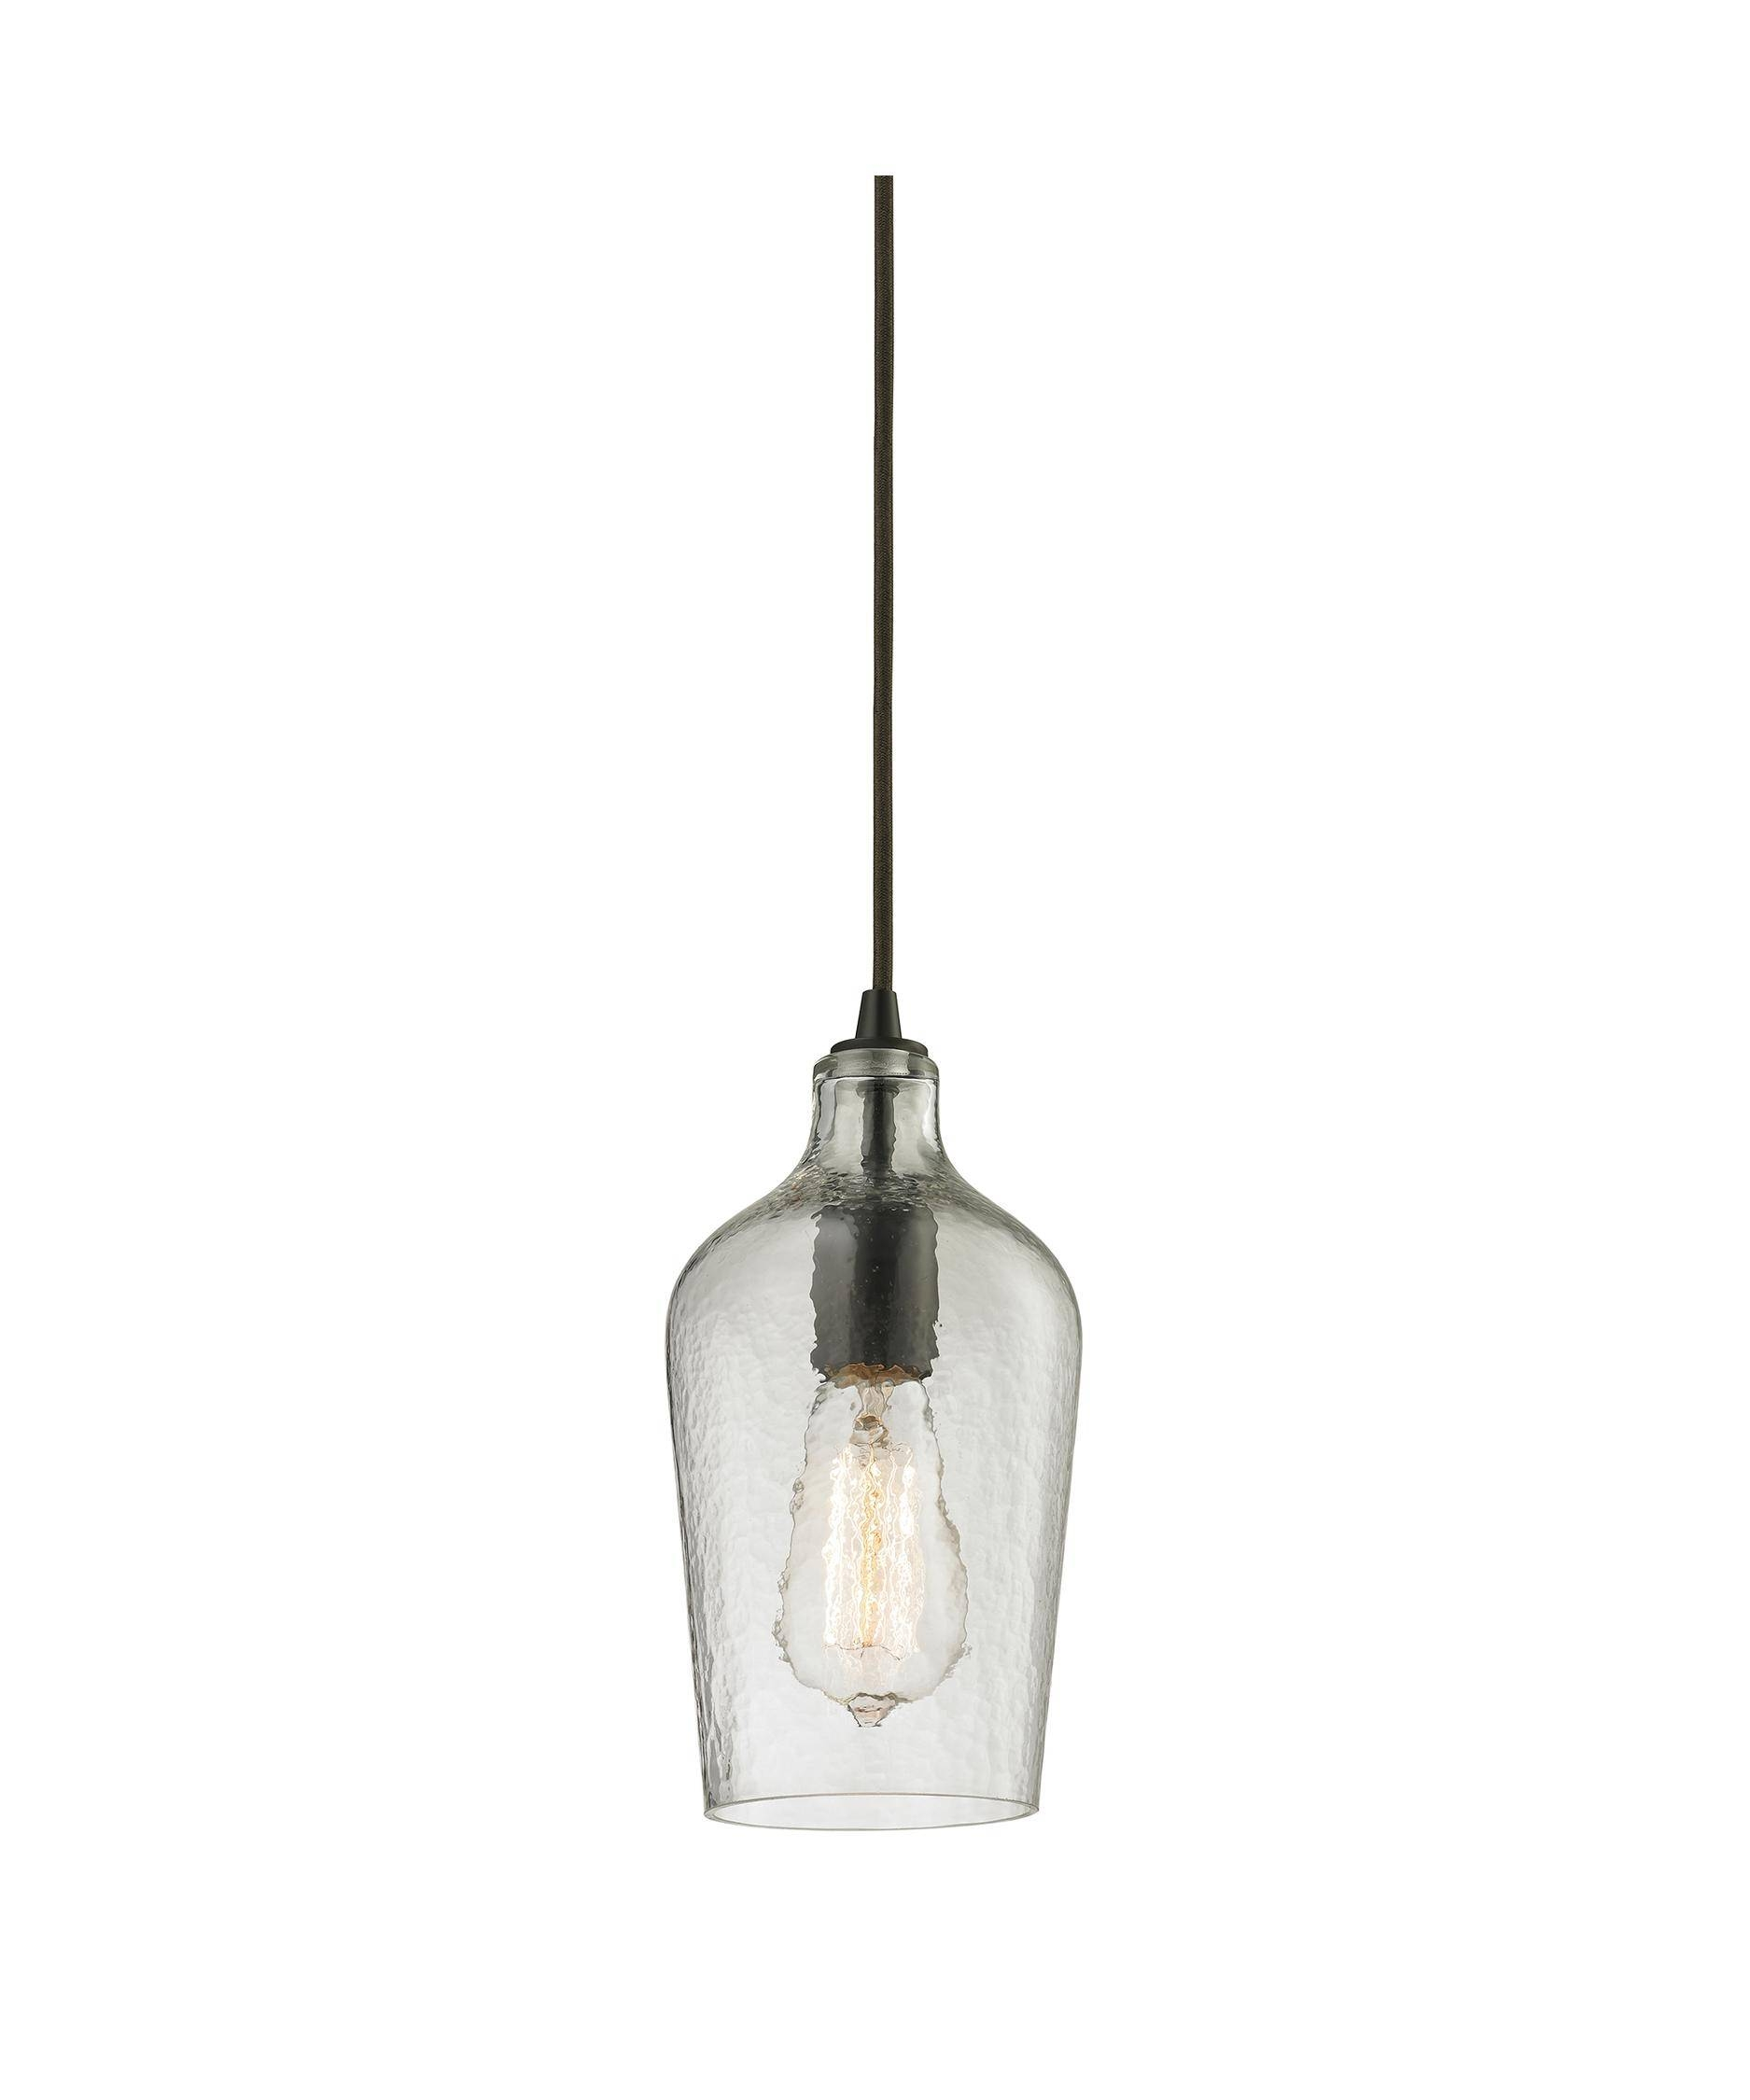 Elk Lighting 10331 1 Hammered Glass 2 Inch Wide 1 Light Mini Throughout Clear Glass Mini Pendant Lights (View 6 of 15)